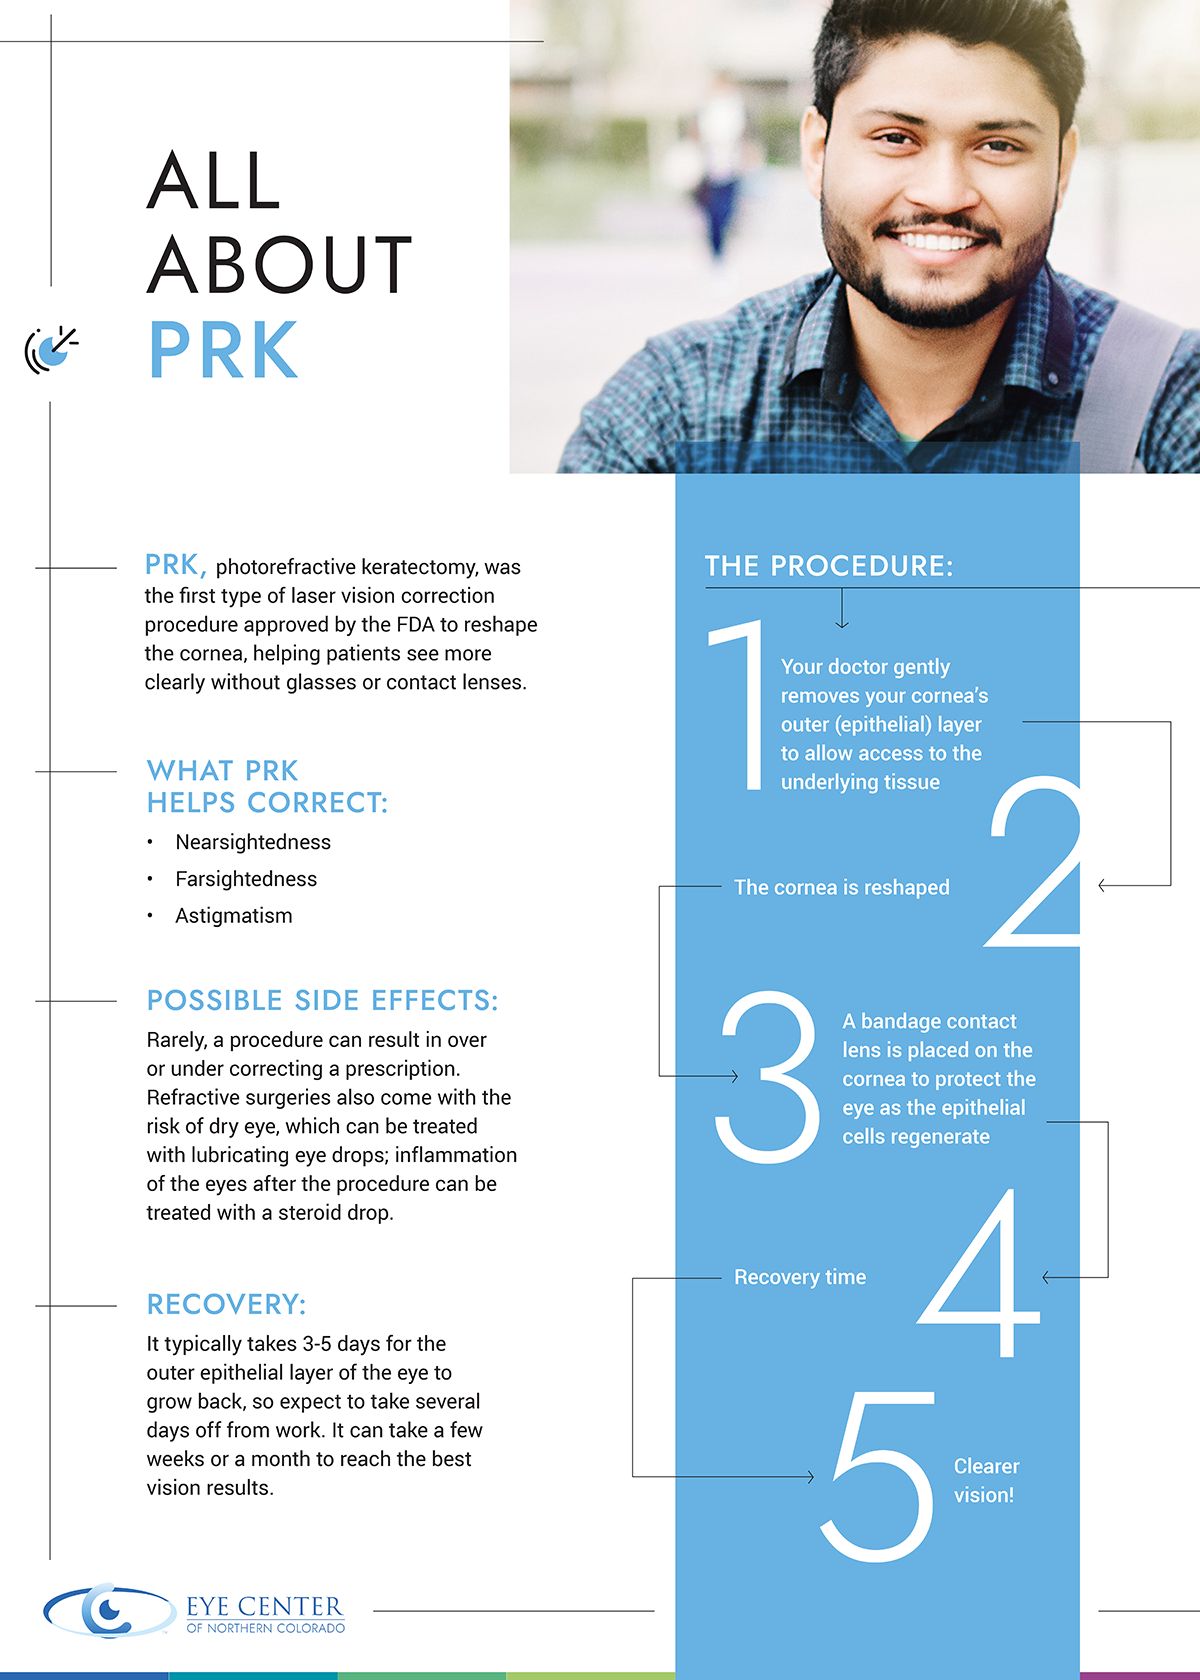 all about PRK infographic